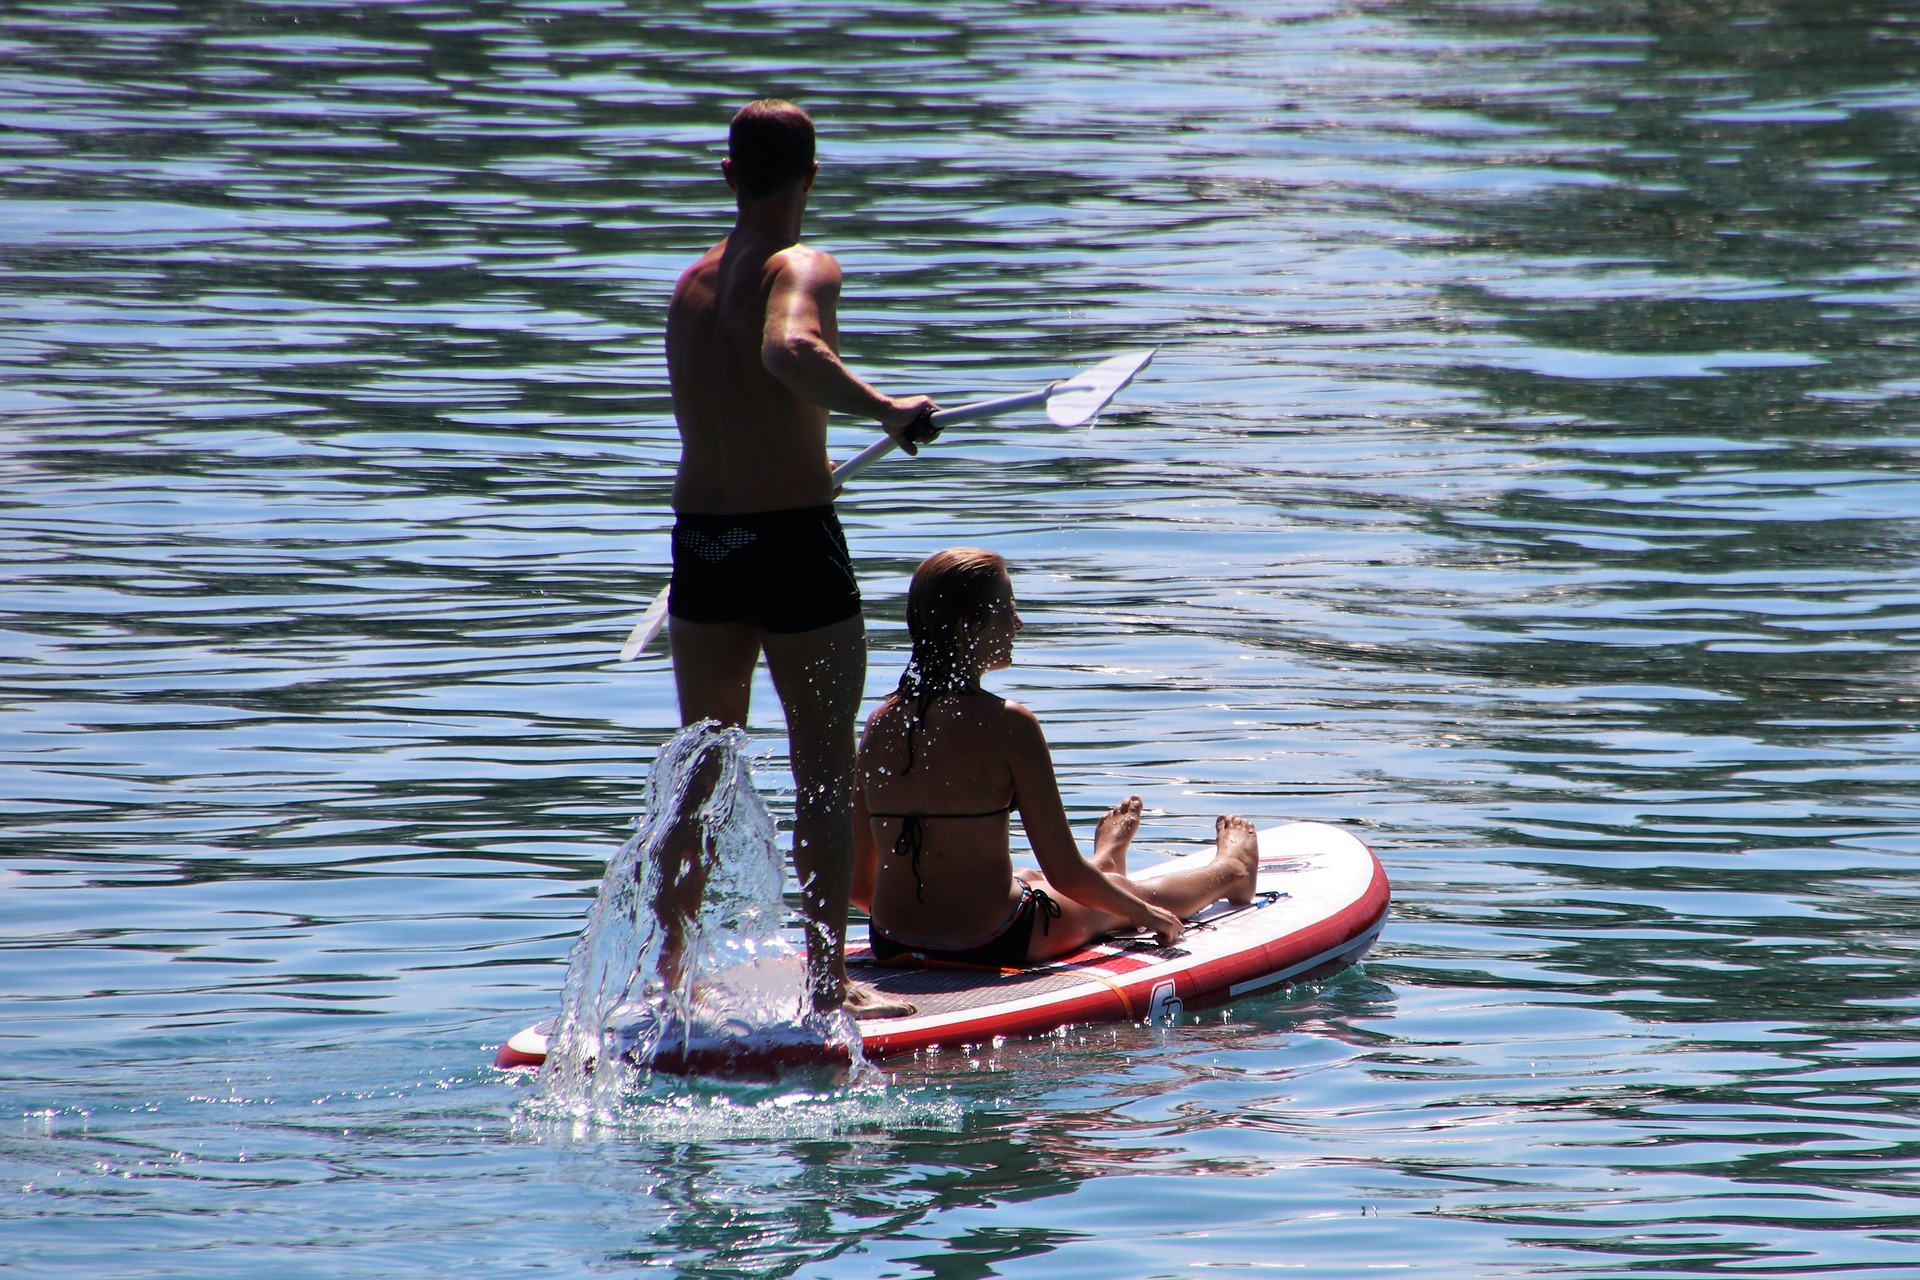 Water Sports in Grand Junction